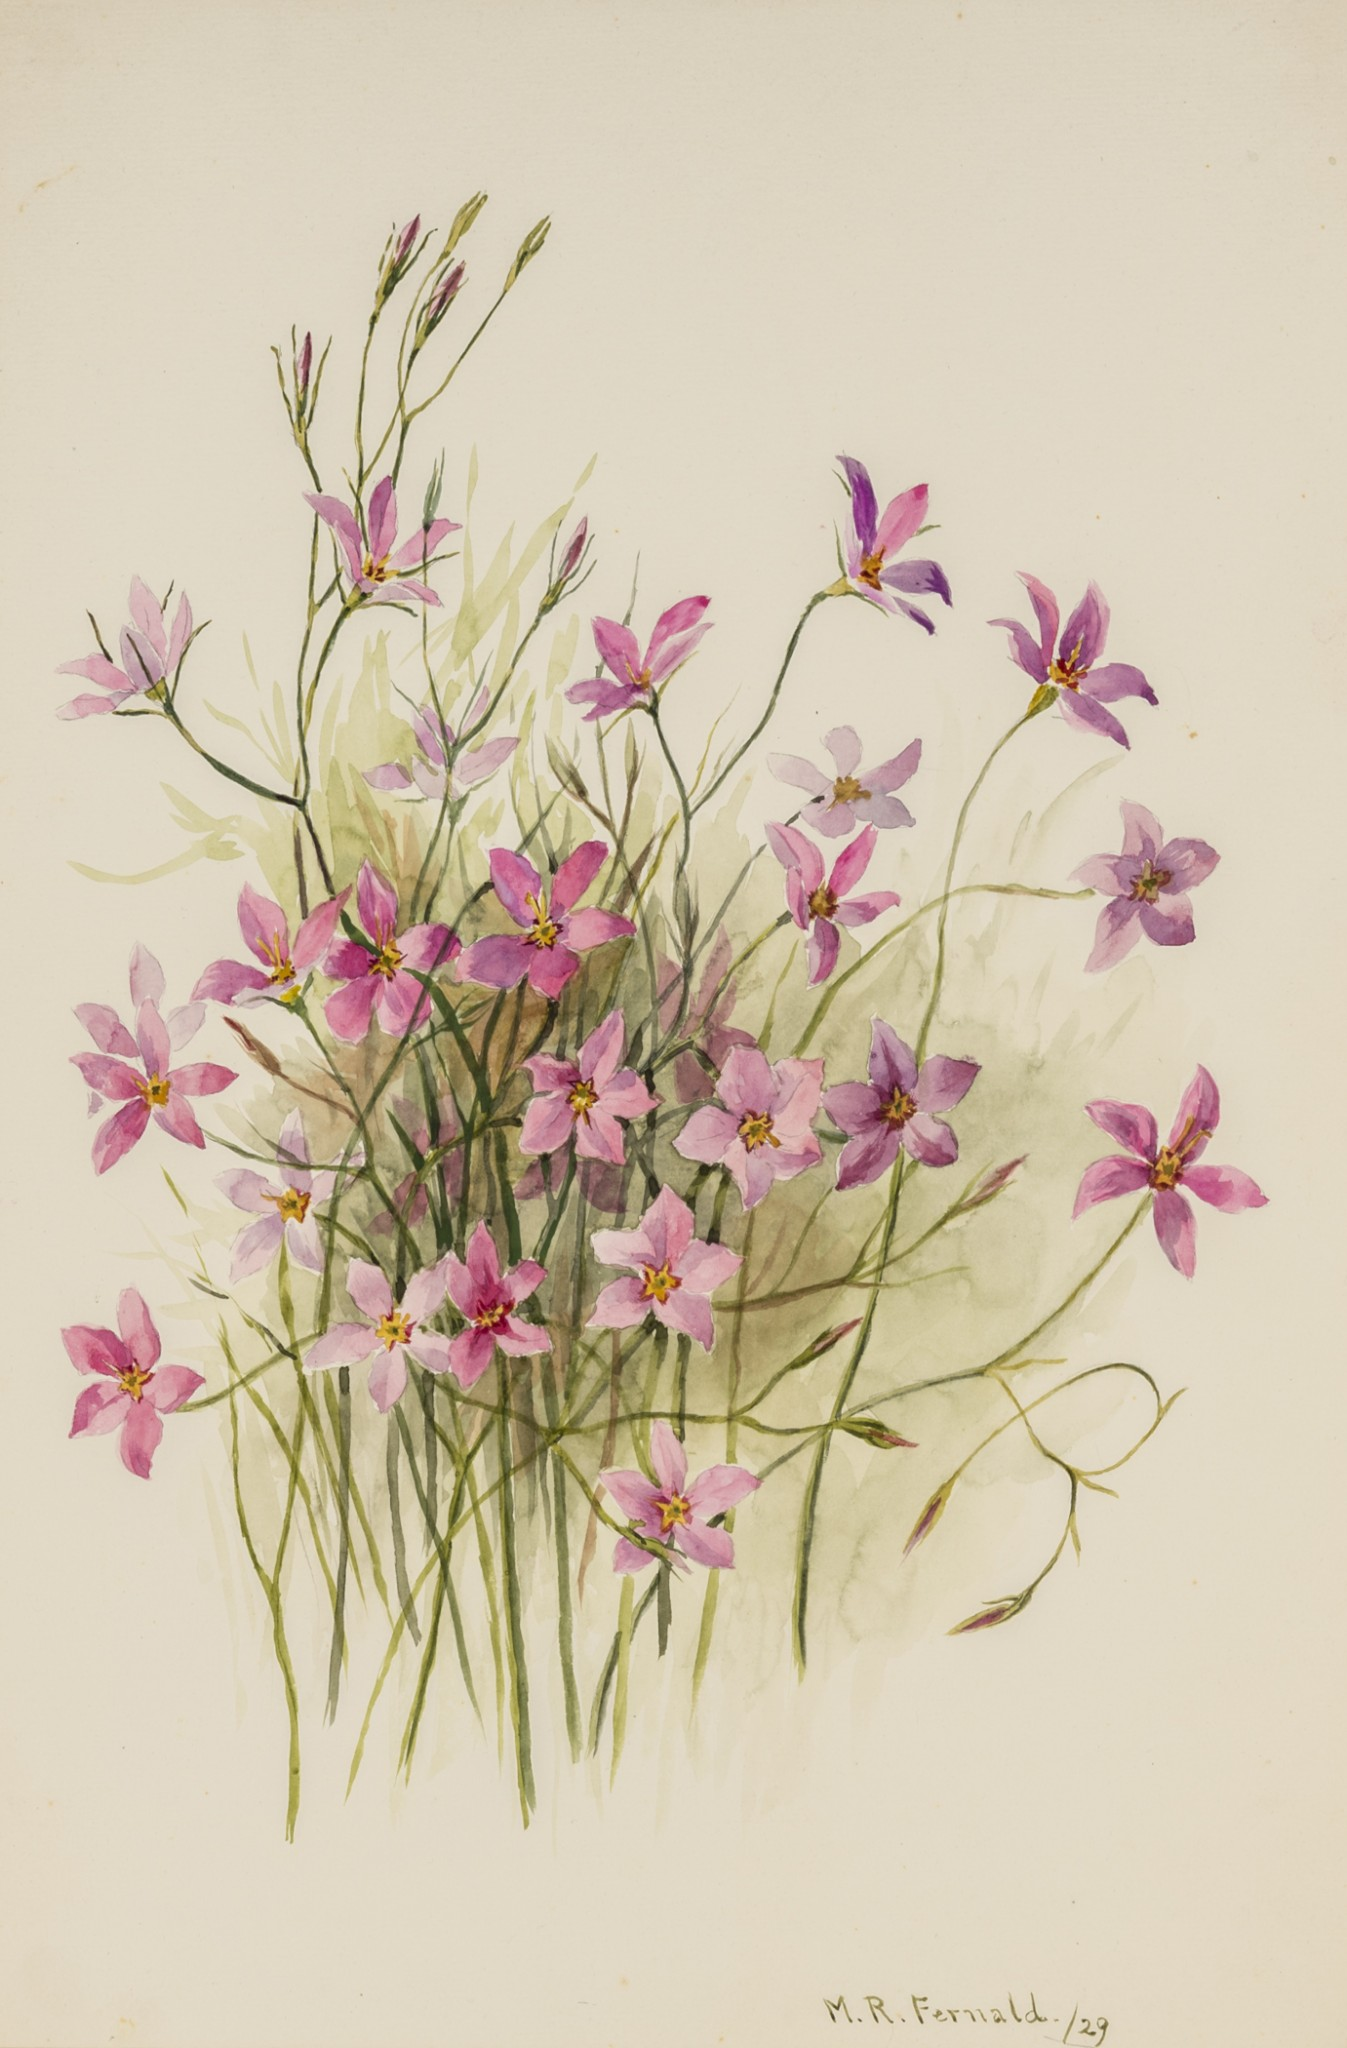 Forgotten For Decades Rediscovered Watercolor Collection Features Hundreds Of Florida Plants Florida Museum Science